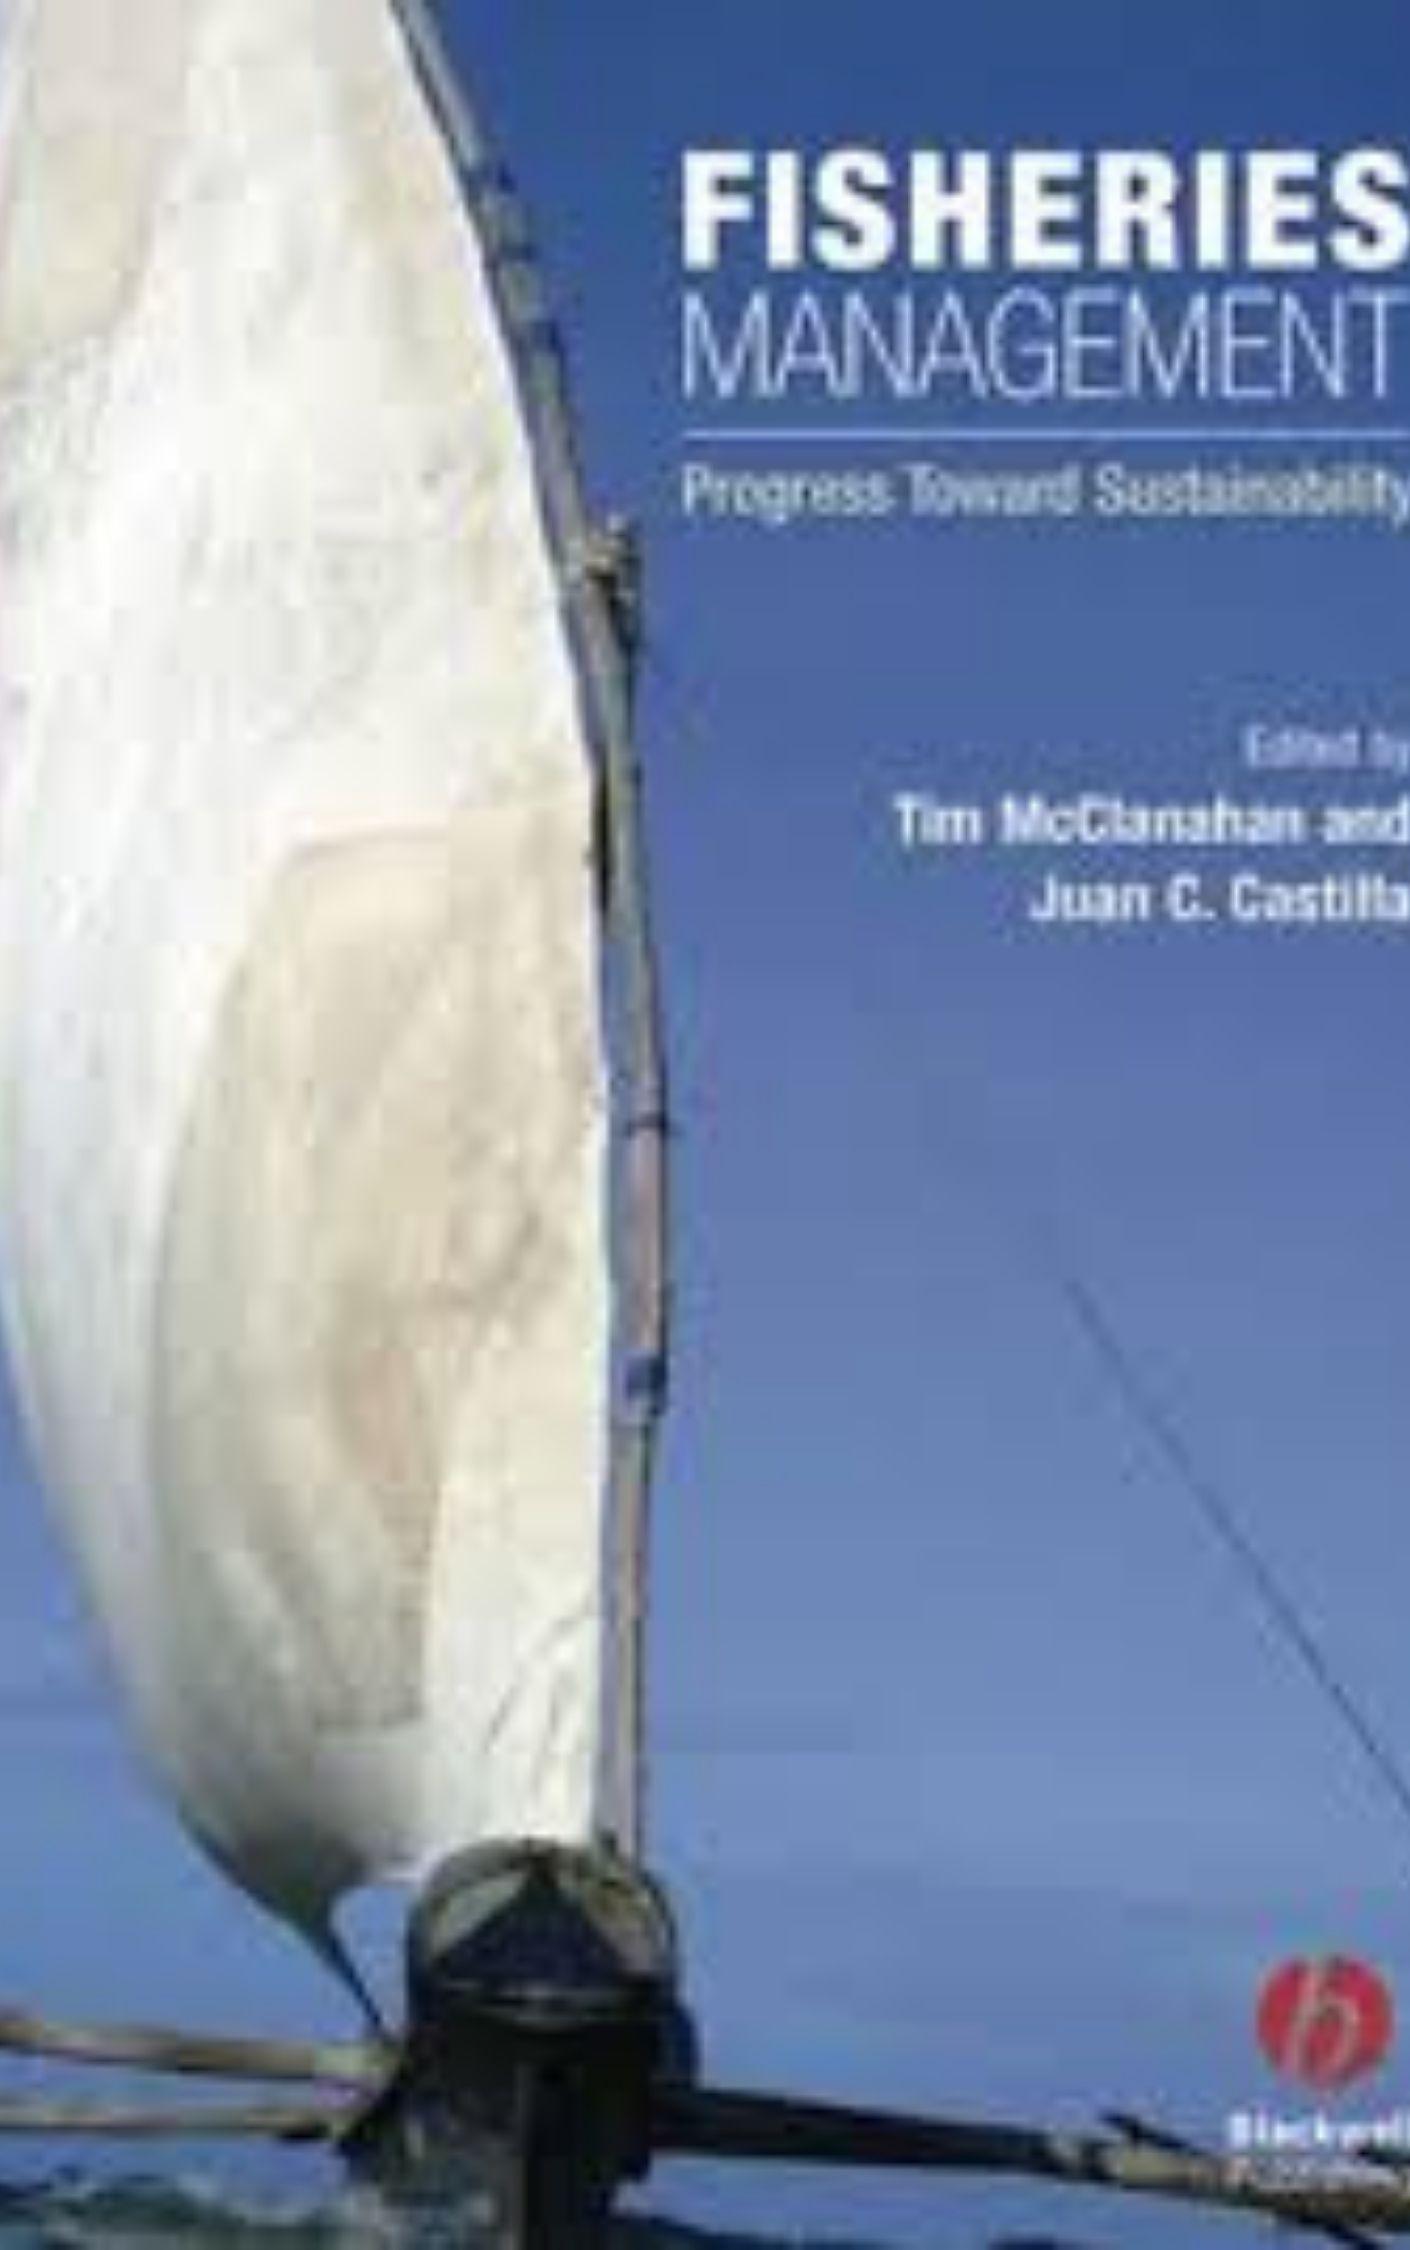 Fisheries Management Progress Towards Sustainability by Tim McClanahan